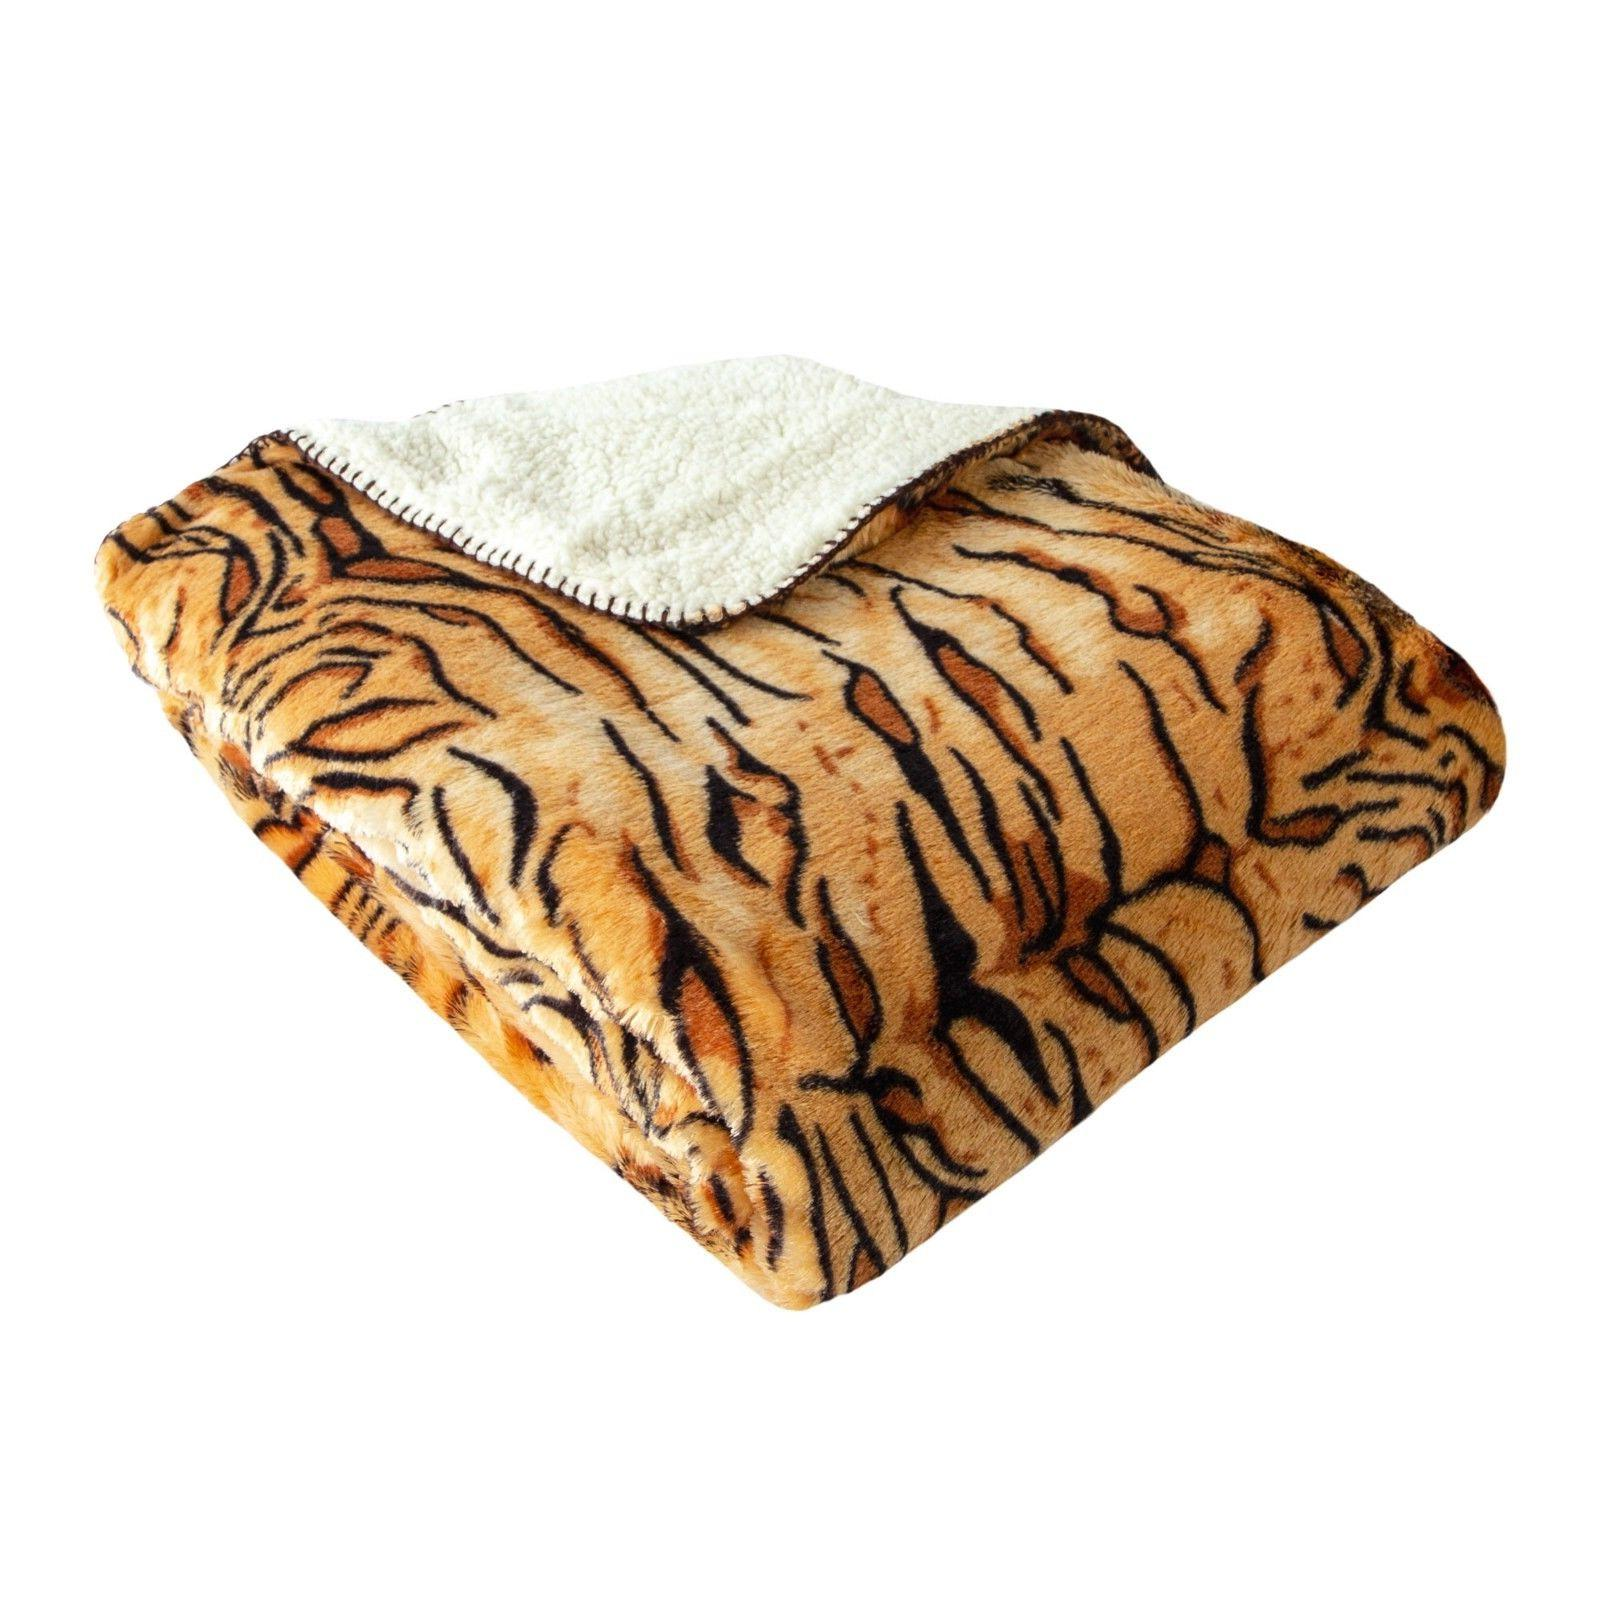 Oversized Luxury Mink Print Throw with Sherpa Back